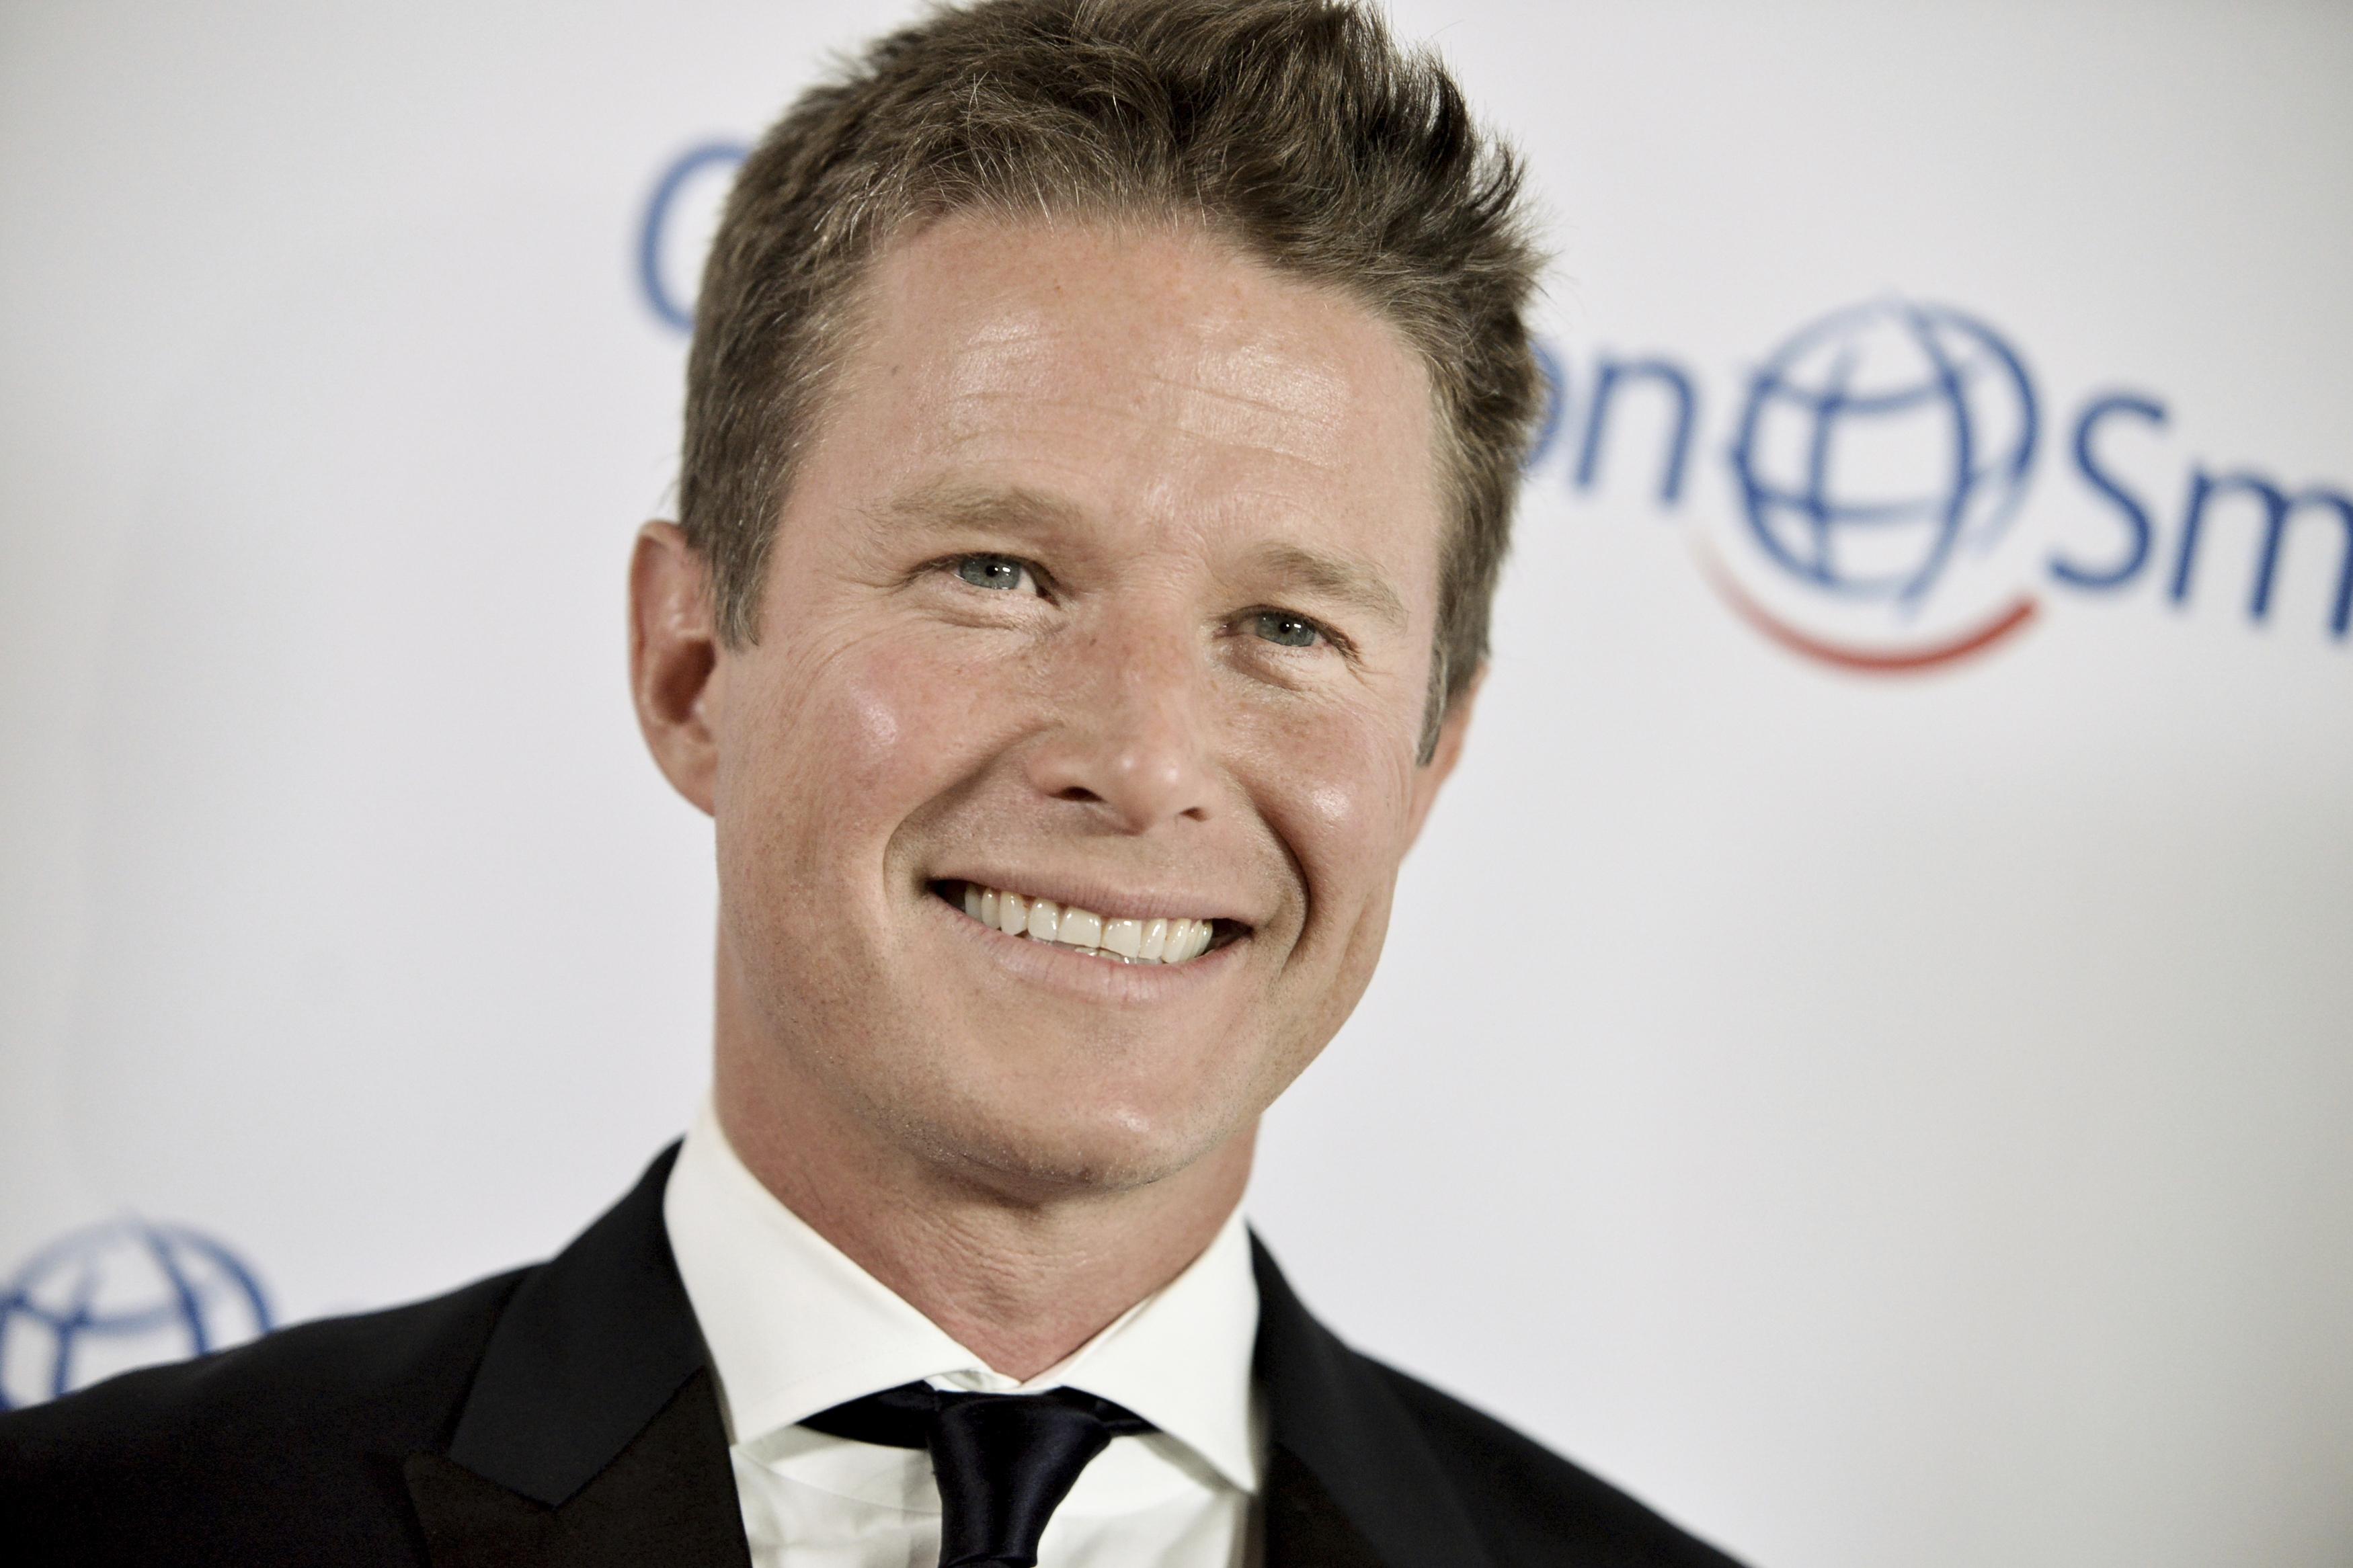 Billy Bush Hospitalized After Getting Hit by Golf Ball m Billy bush wife photo